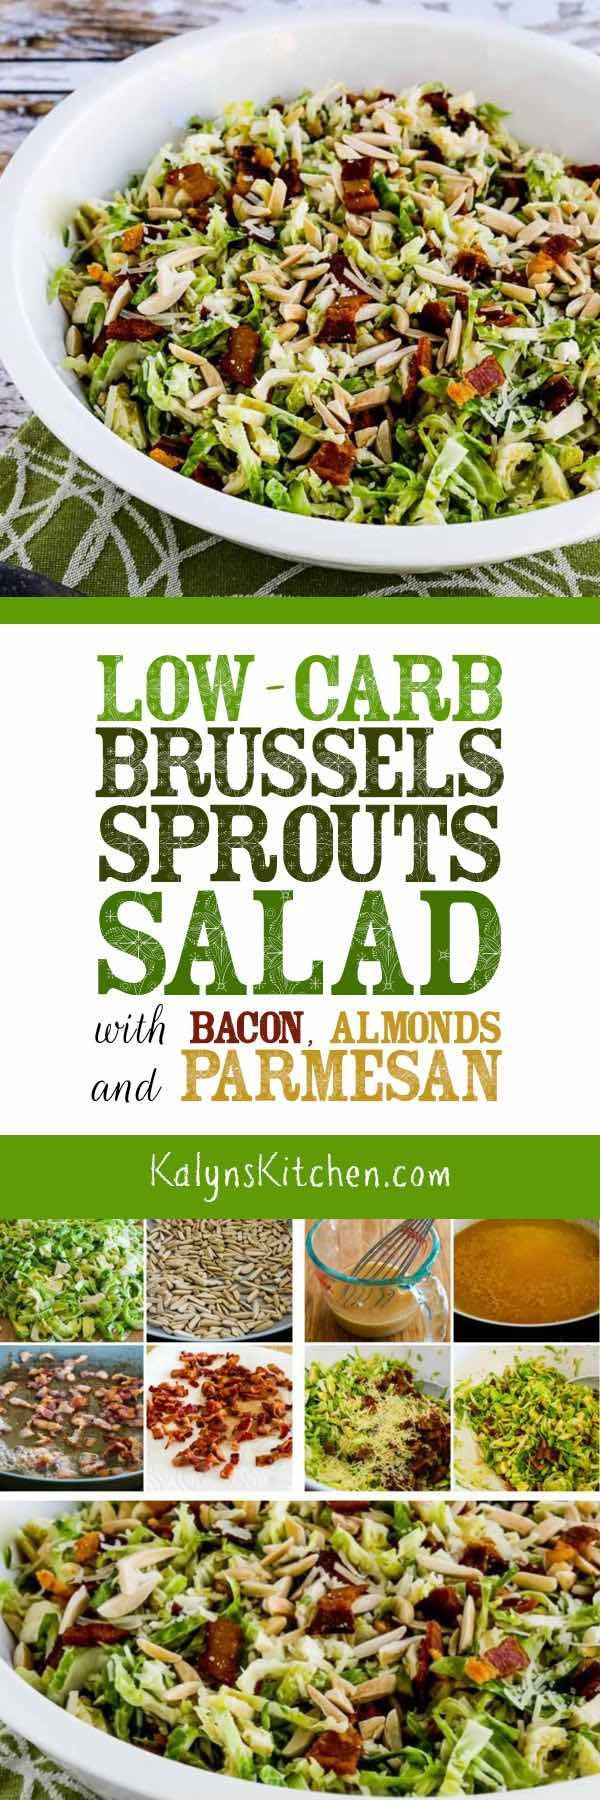 Low-Carb Brussels Sprouts Salad with Bacon, Almonds, and Parmesan is absolutely AMAZING; if you haven't had a salad with raw brussels sprouts this is a must-try! You can also add a few dried cranberries if you want to make it into a holiday salad and don't mind adding a few carbs! [found on KalynsKitchen.com] #BrusselsSprouts #BrusselsSproutsSalad #BrusselsSproutsSaladBaconAlmondsParmesan #LowCarbBrusselsSproutsSalad #LowCarb #Keto #GlutenFree